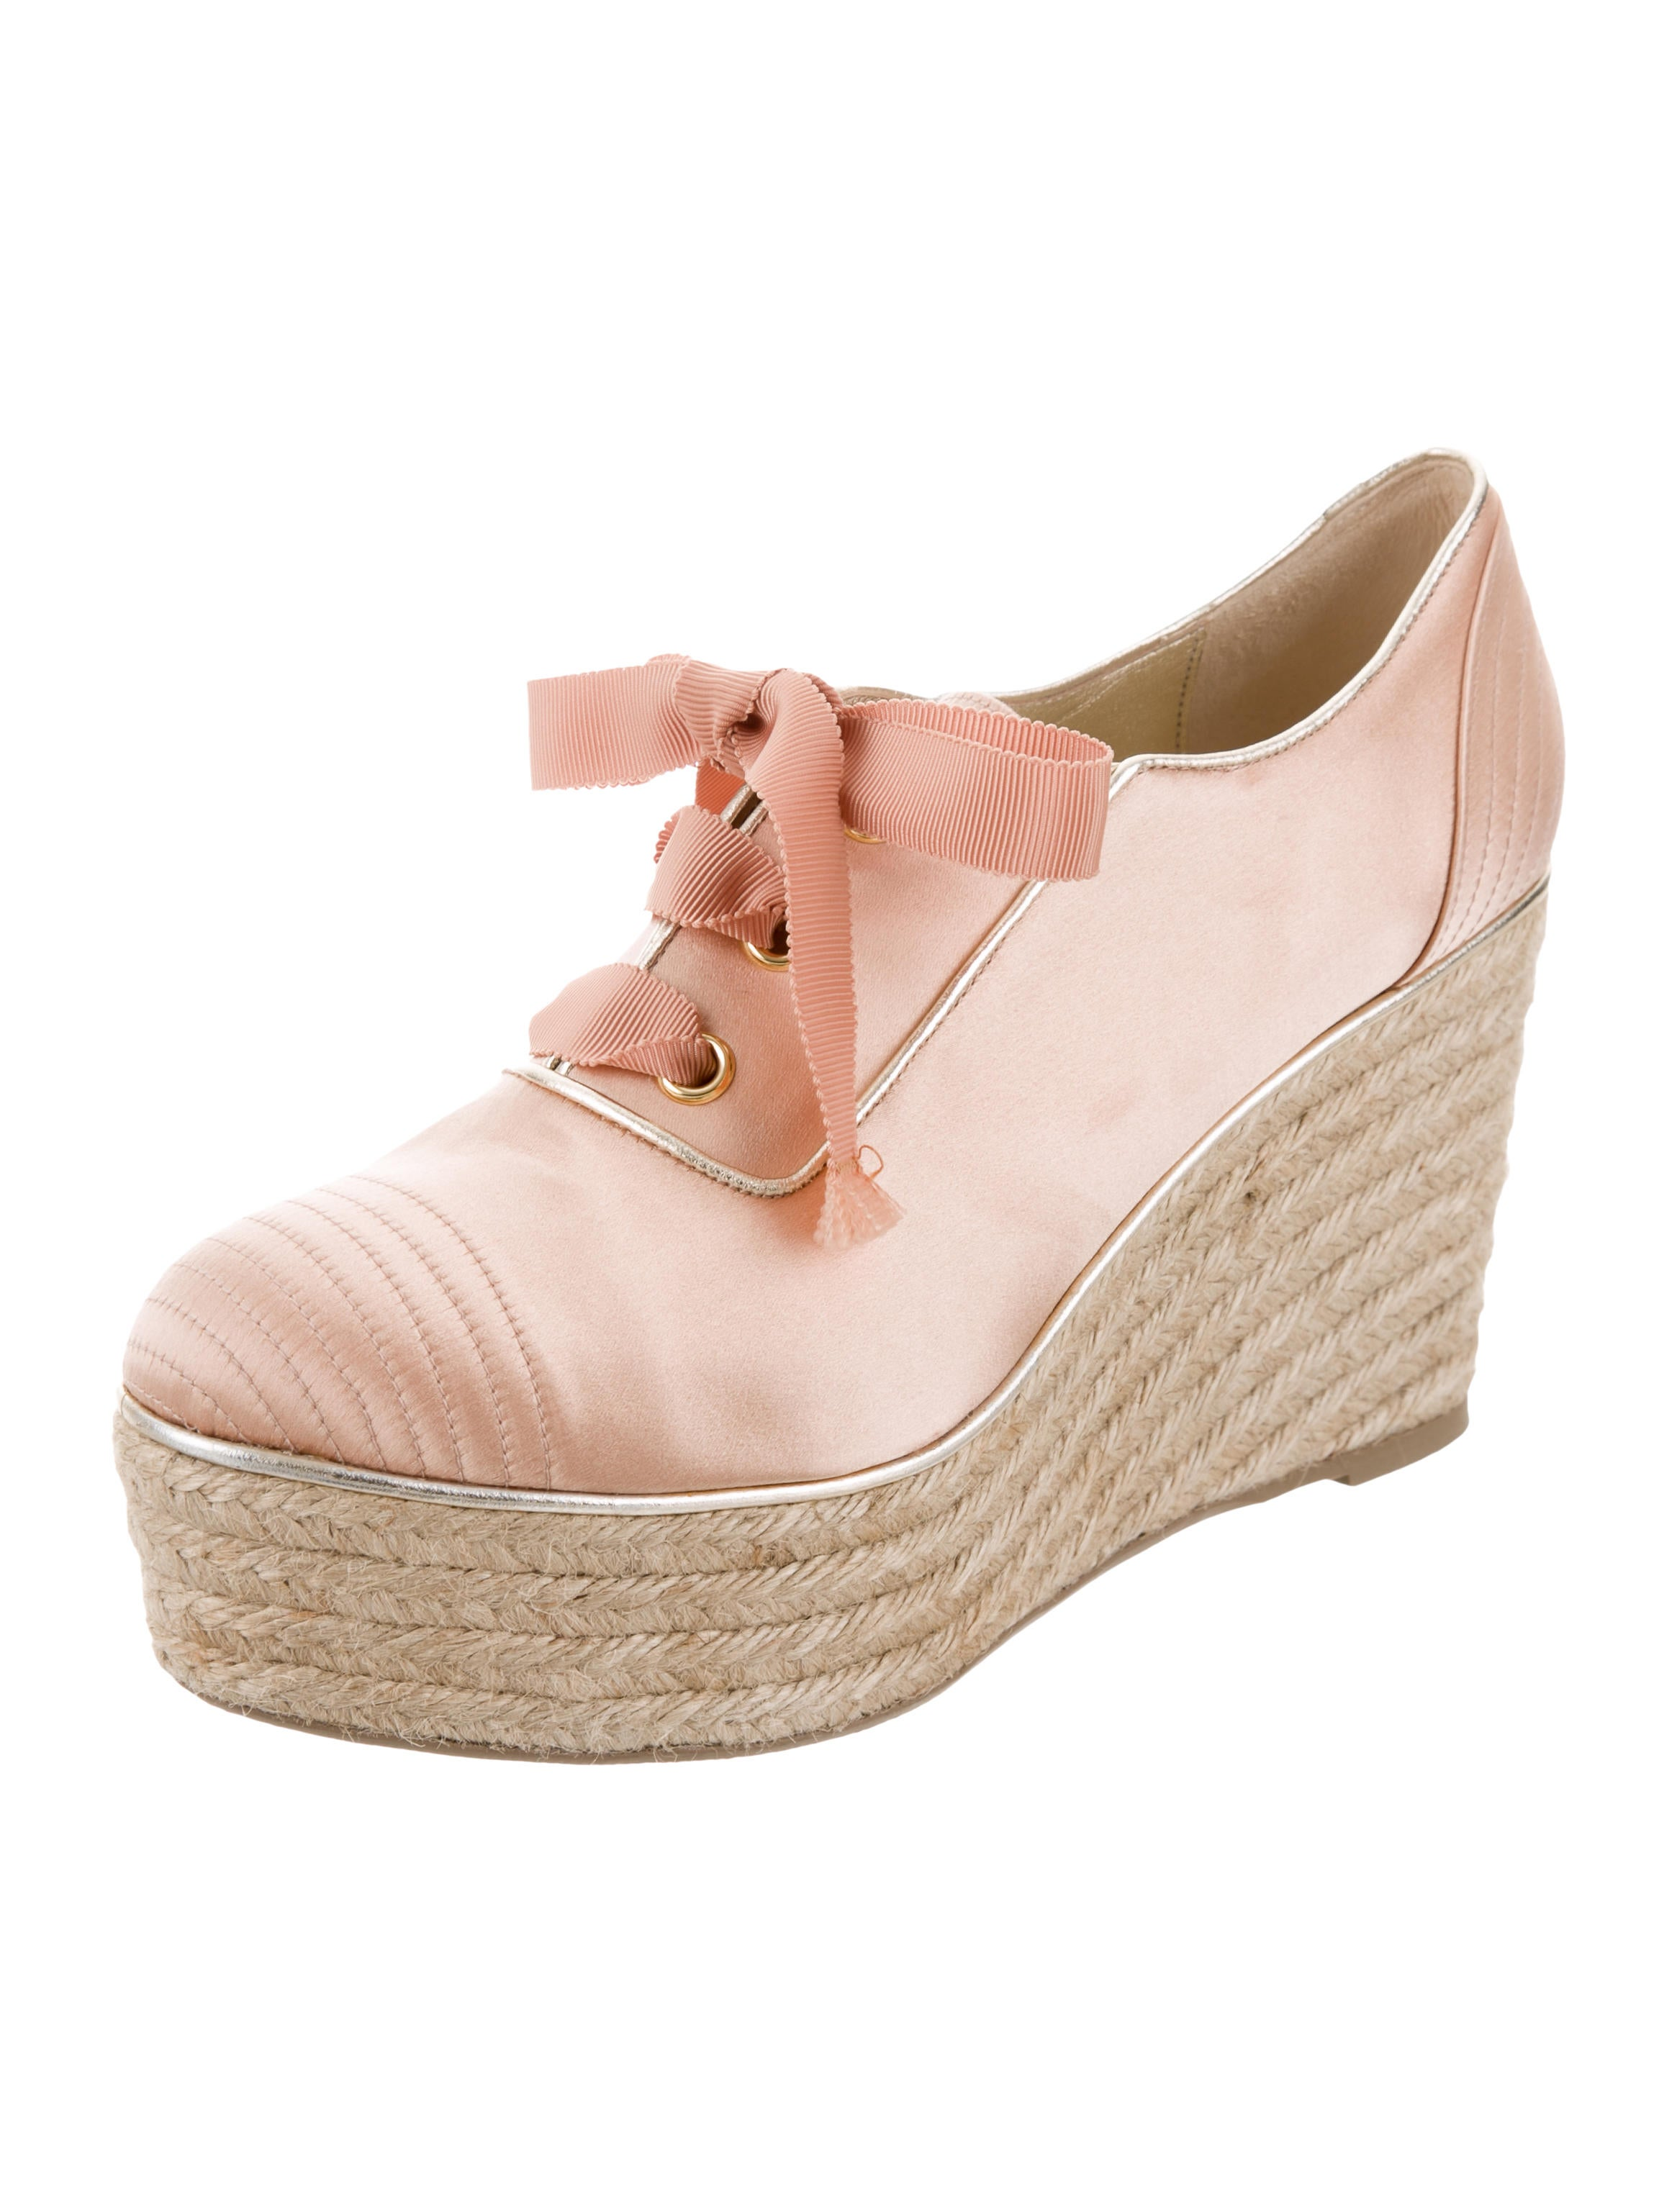 Sonia Rykiel Satin Oxford Wedges visa payment cheap price free shipping very cheap discount really cheap sale discount many kinds of cheap online iP8ccJWjys